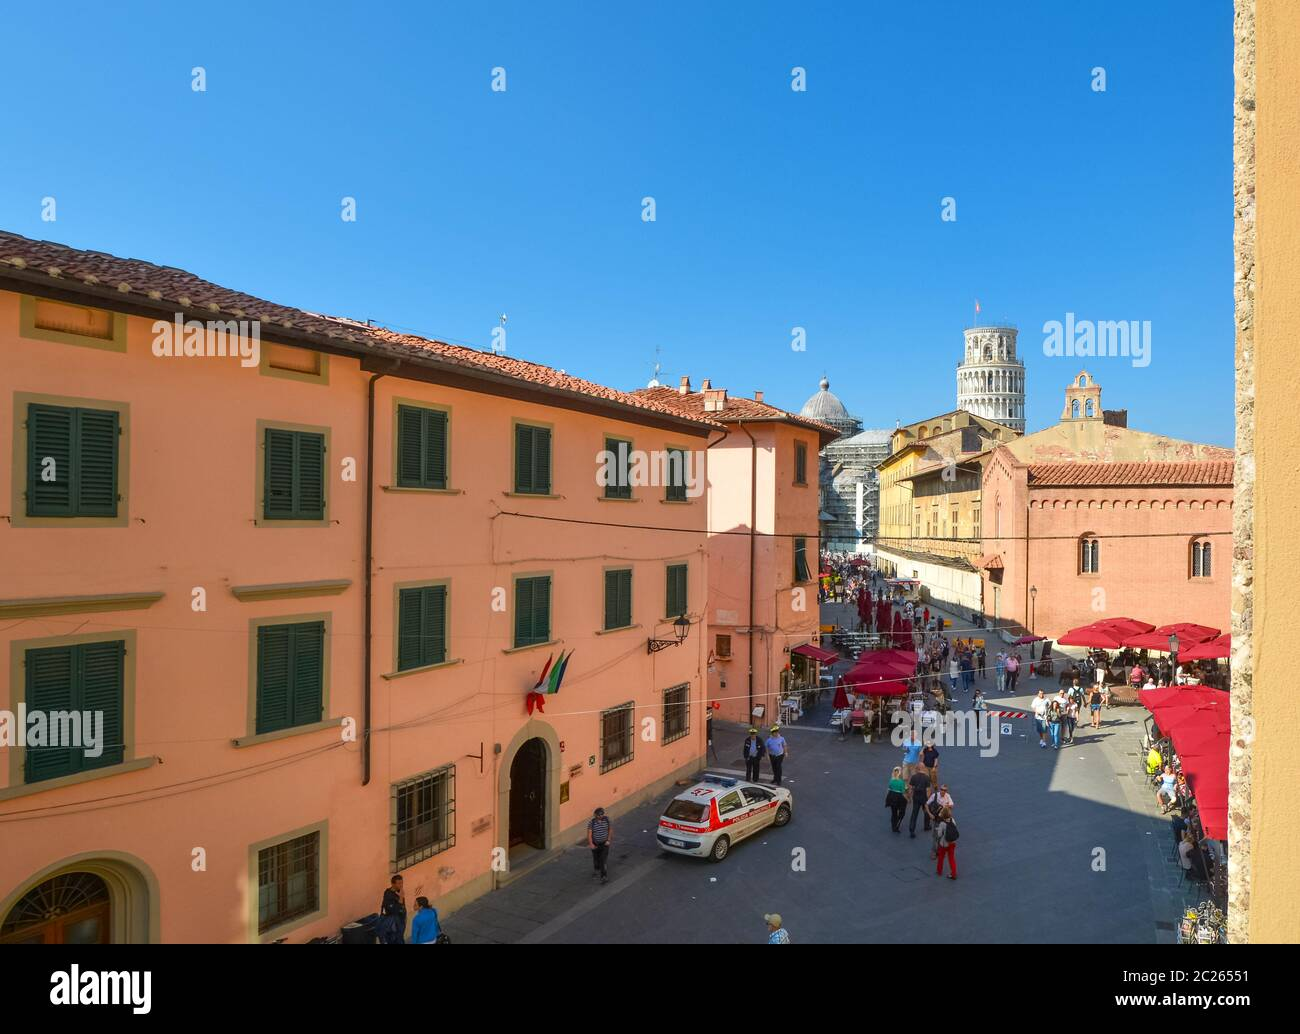 Tourists and cafes on the Via Santa Maria, the busy tourist street leading to the Leaning tower in the Tuscan city of Pisa, Italy Stock Photo